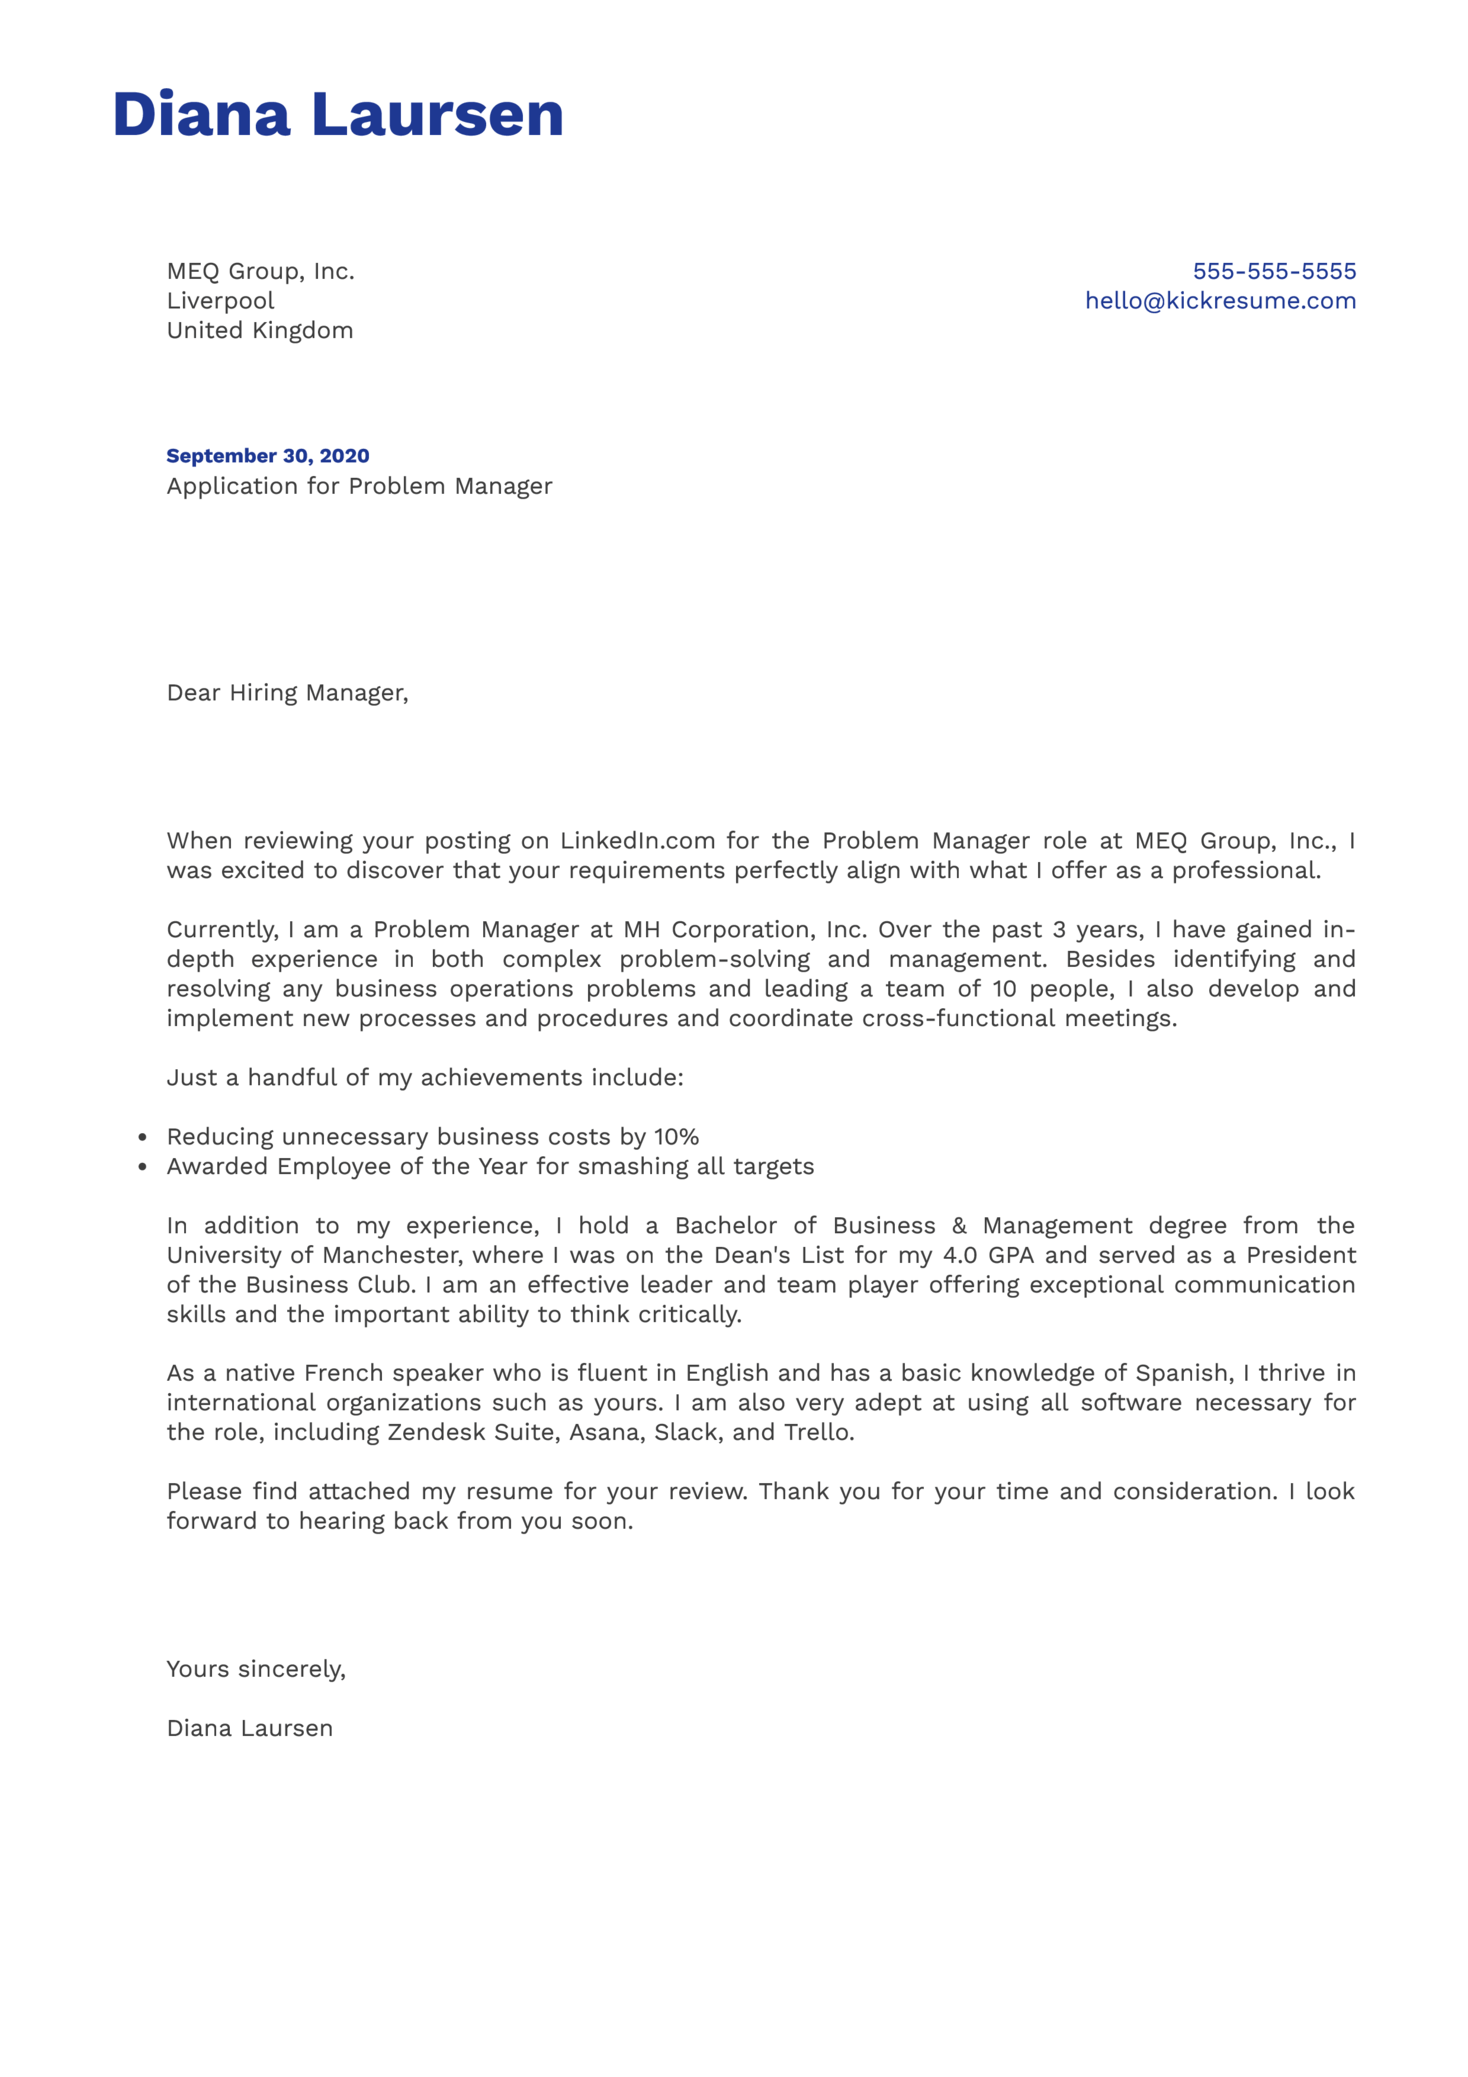 Problem Manager Cover Letter Example